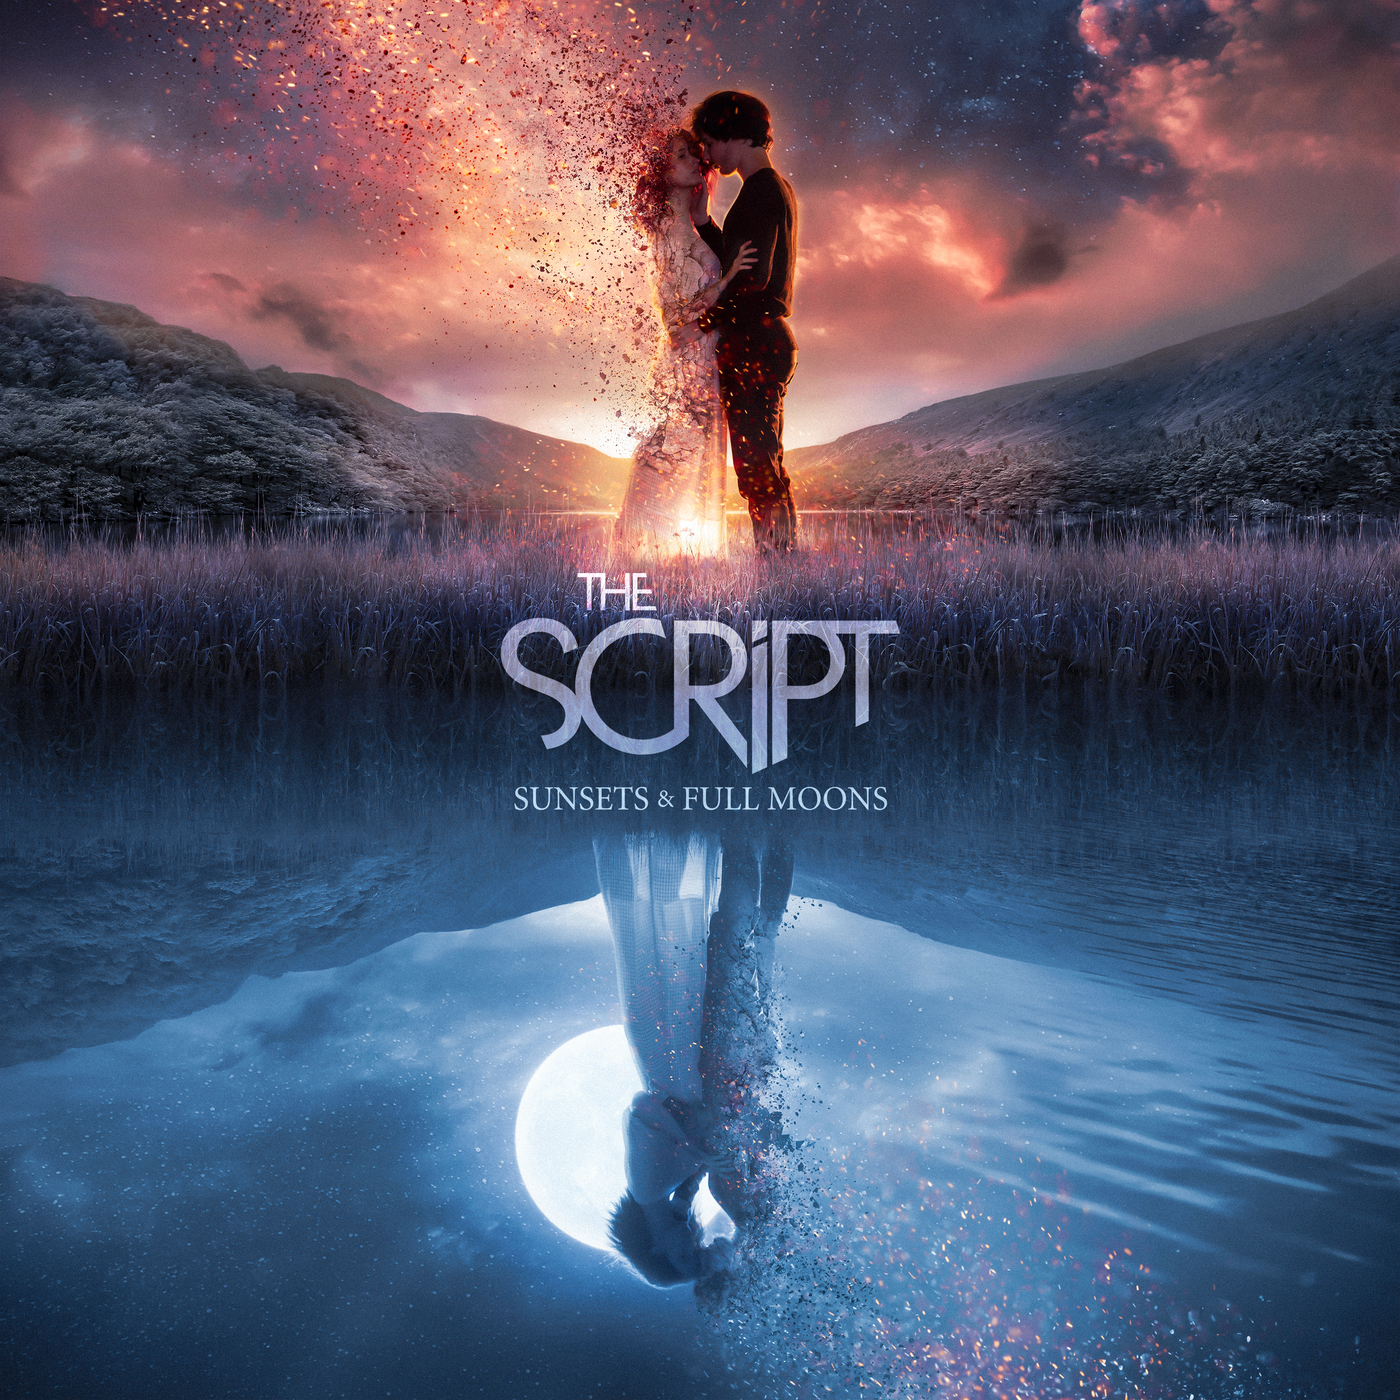 Sunsets & Full Moons - The Script